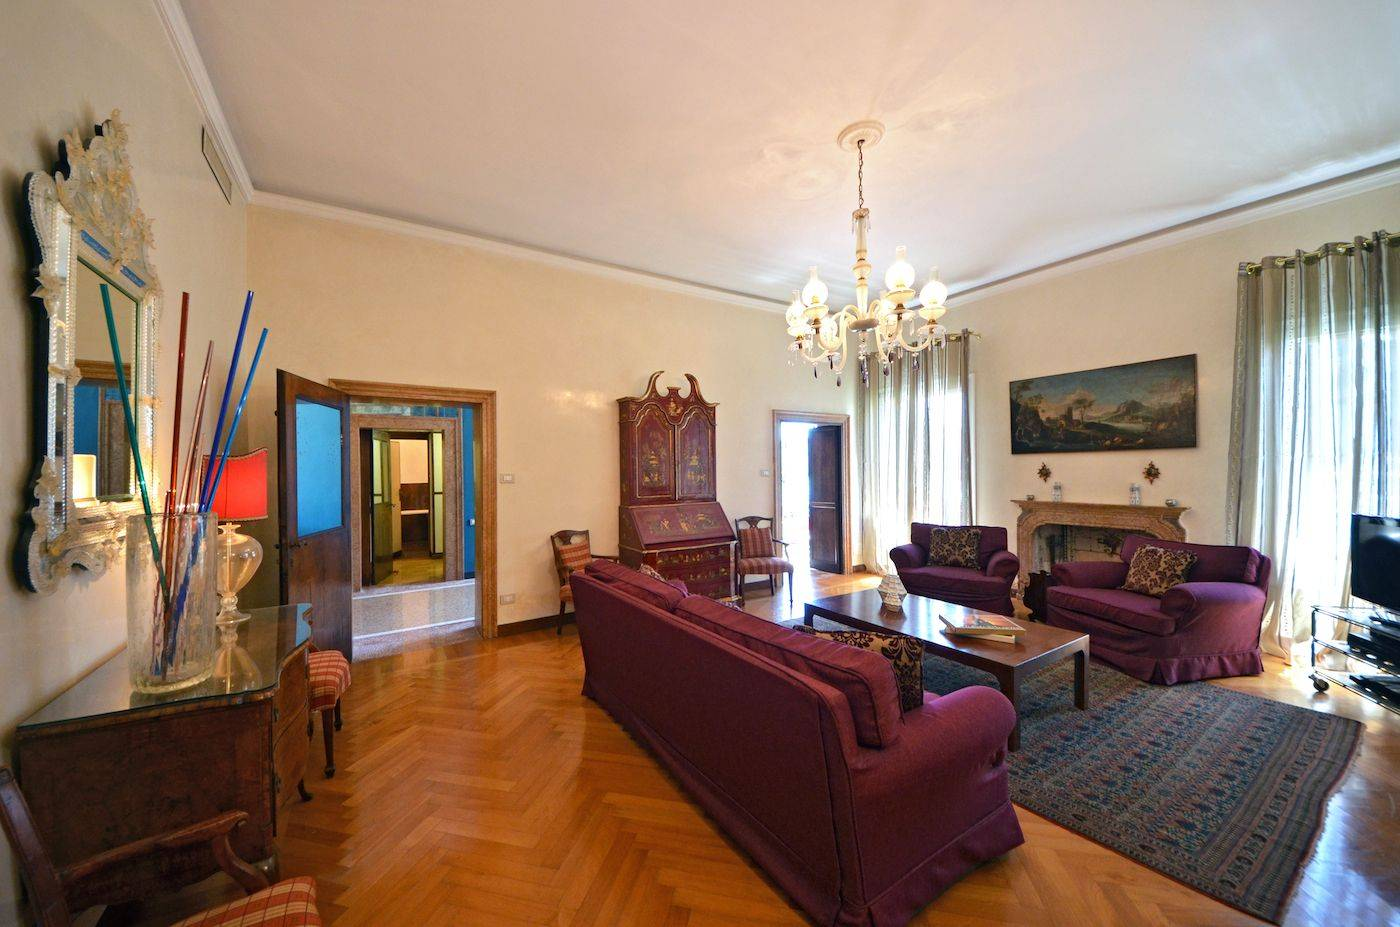 elegant and spacious living room of the Dogaressa apartment